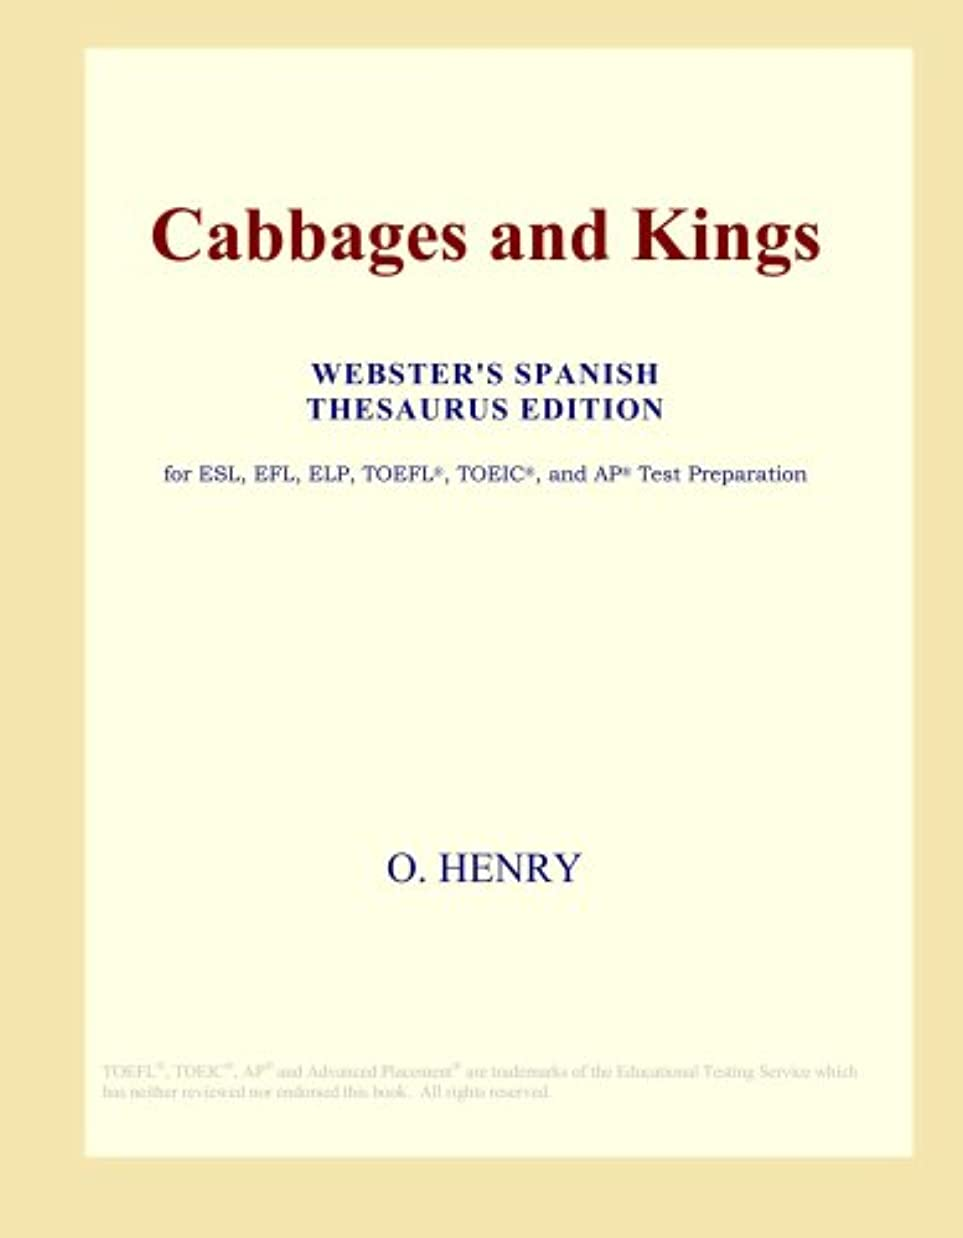 衝動知る同様にCabbages and Kings (Webster's Spanish Thesaurus Edition)